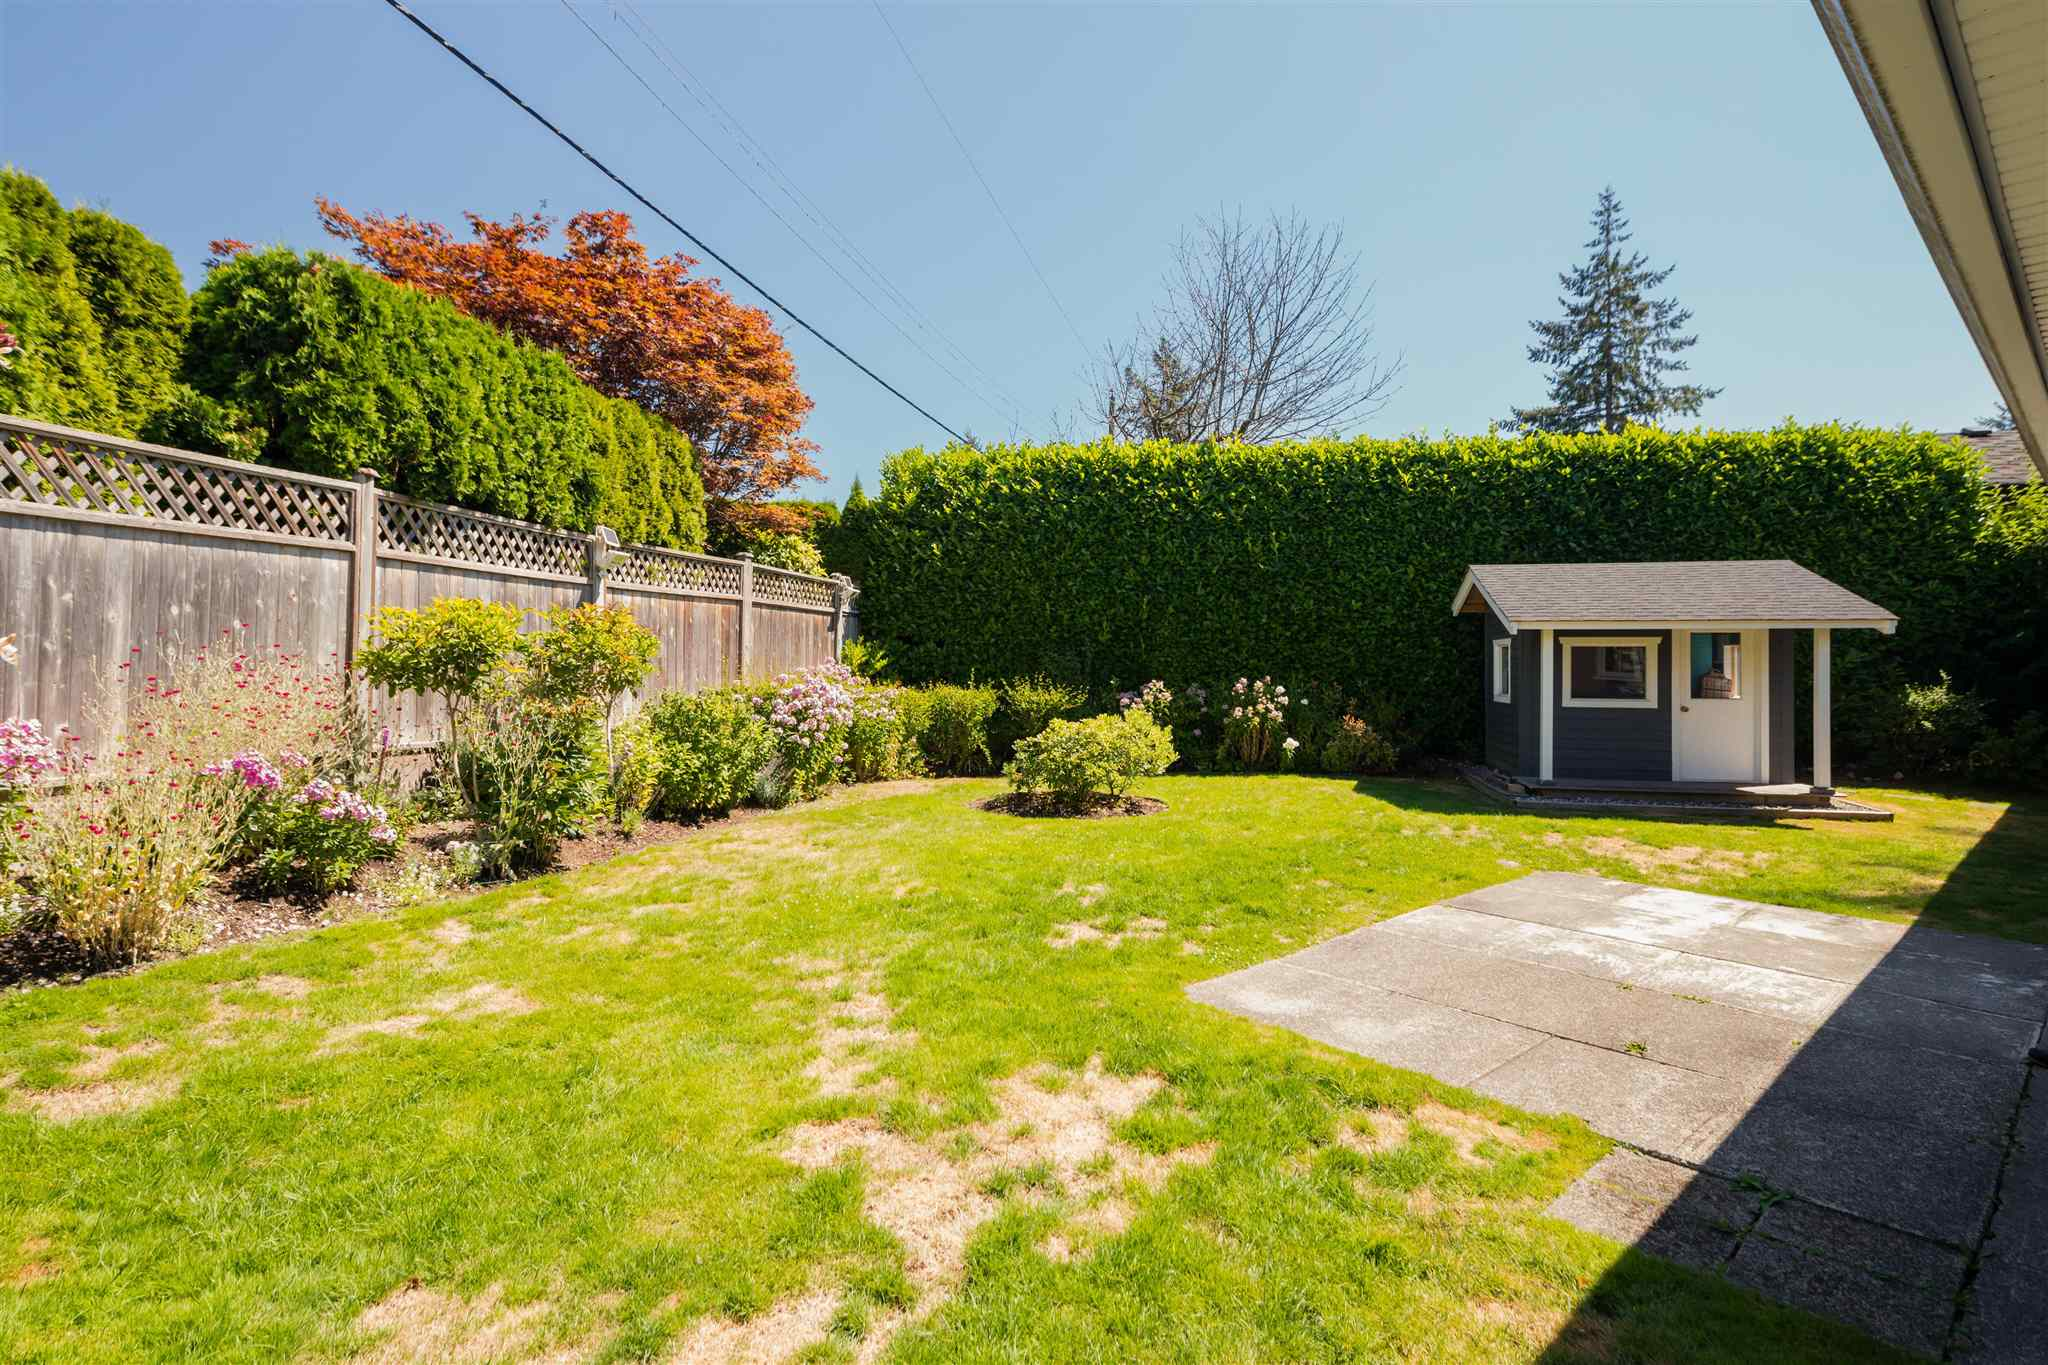 960 W QUEENS ROAD - Edgemont House/Single Family for sale, 2 Bedrooms (R2623308) - #16